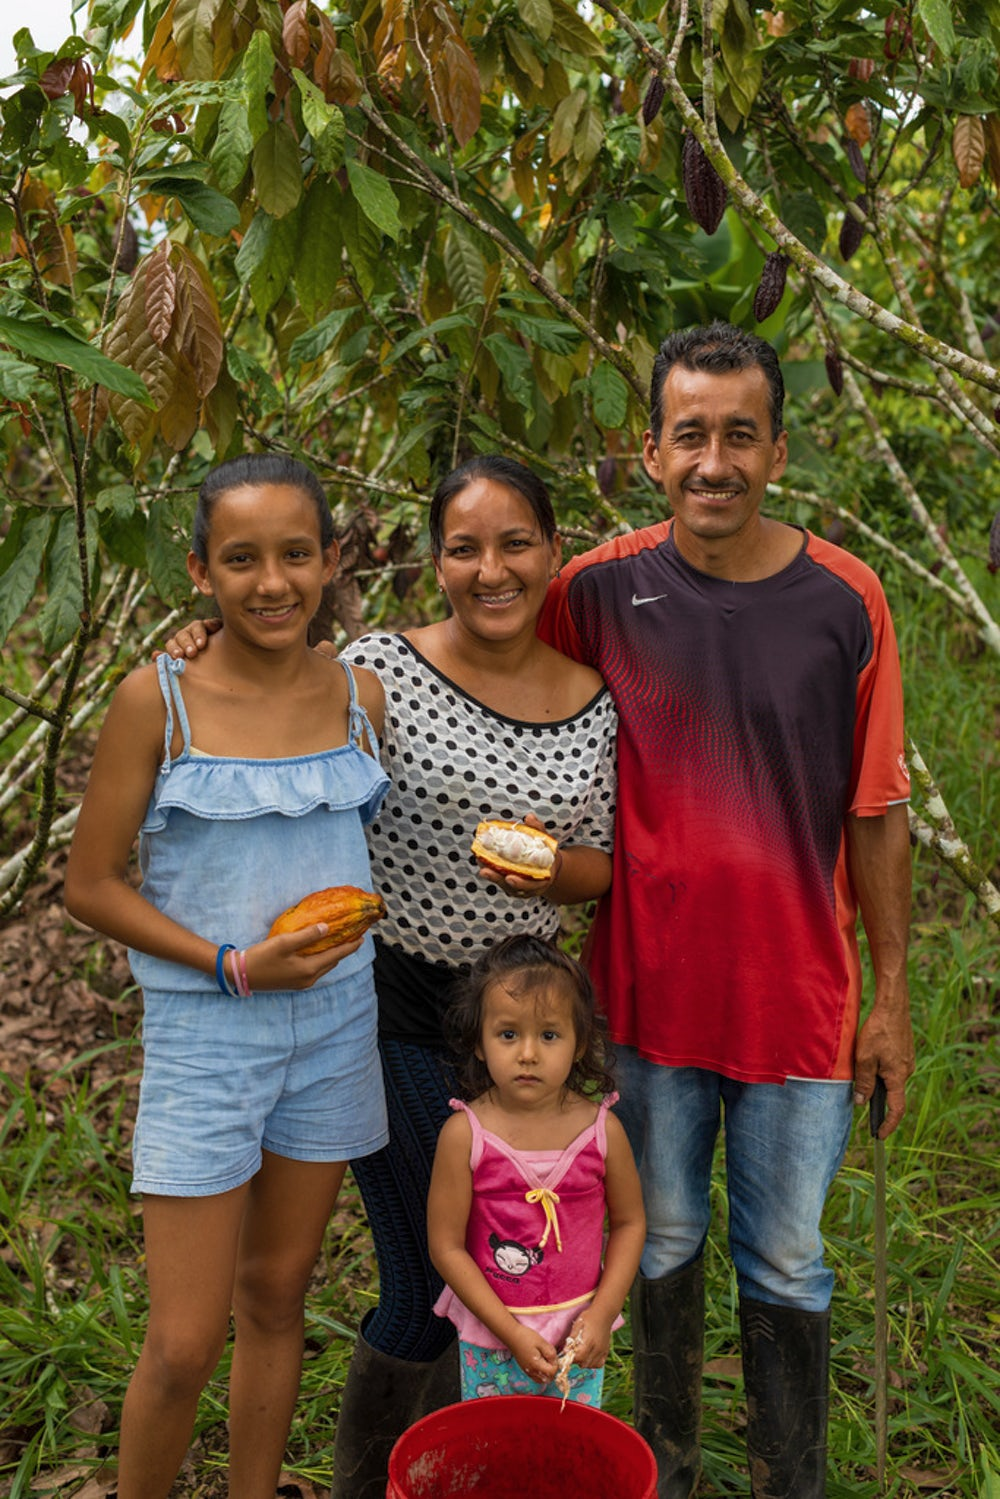 A family portrait in the chocolate grove of a man with his arm around his wife and older daughter, who are holding cacao pods, with the youngest daughter standing in front.